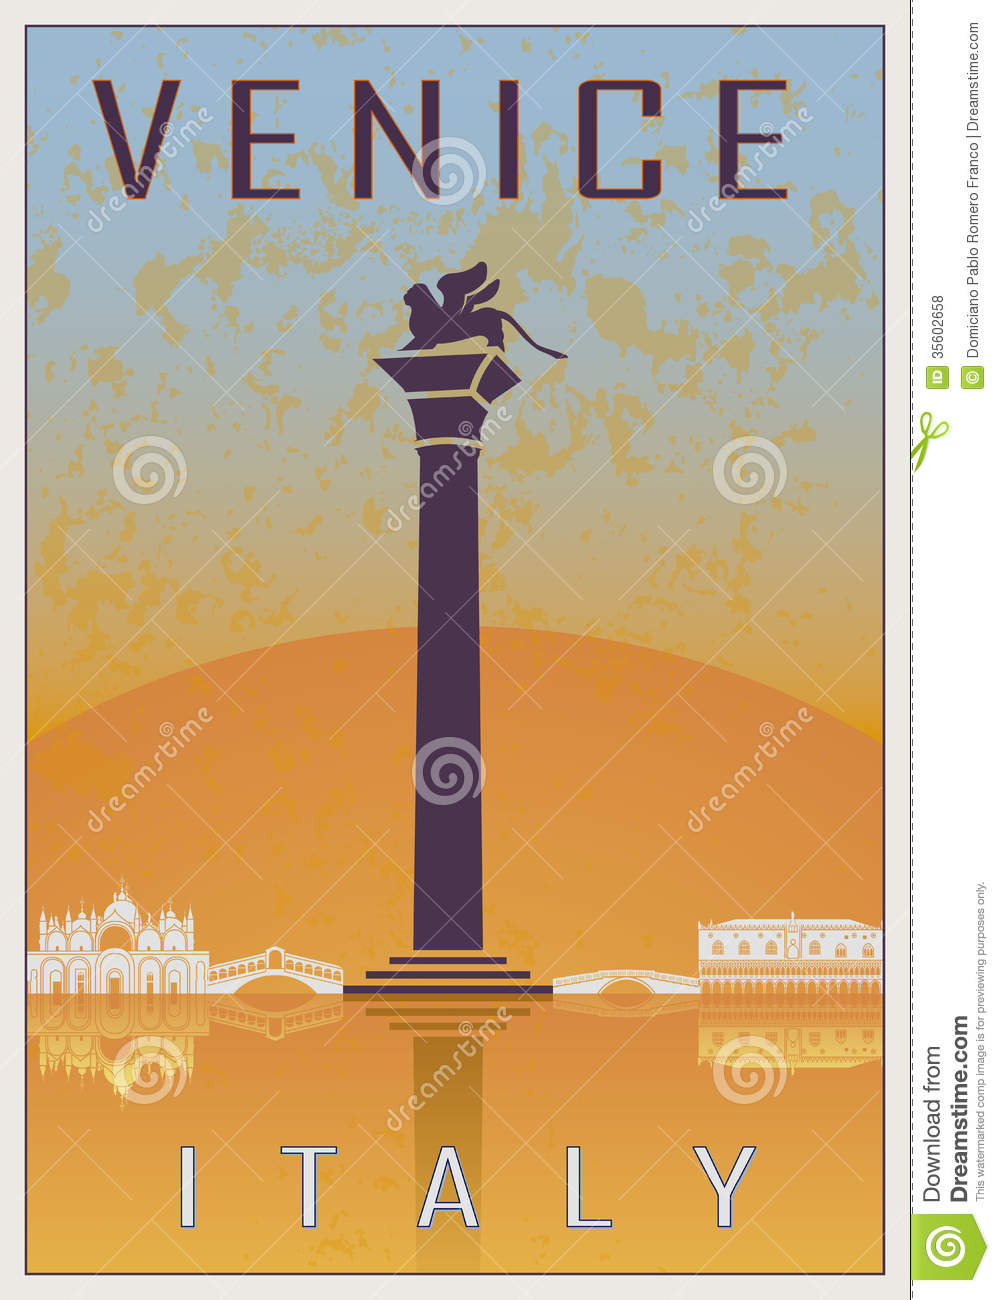 Venice Vintage Poster Royalty Free Stock Photos Image